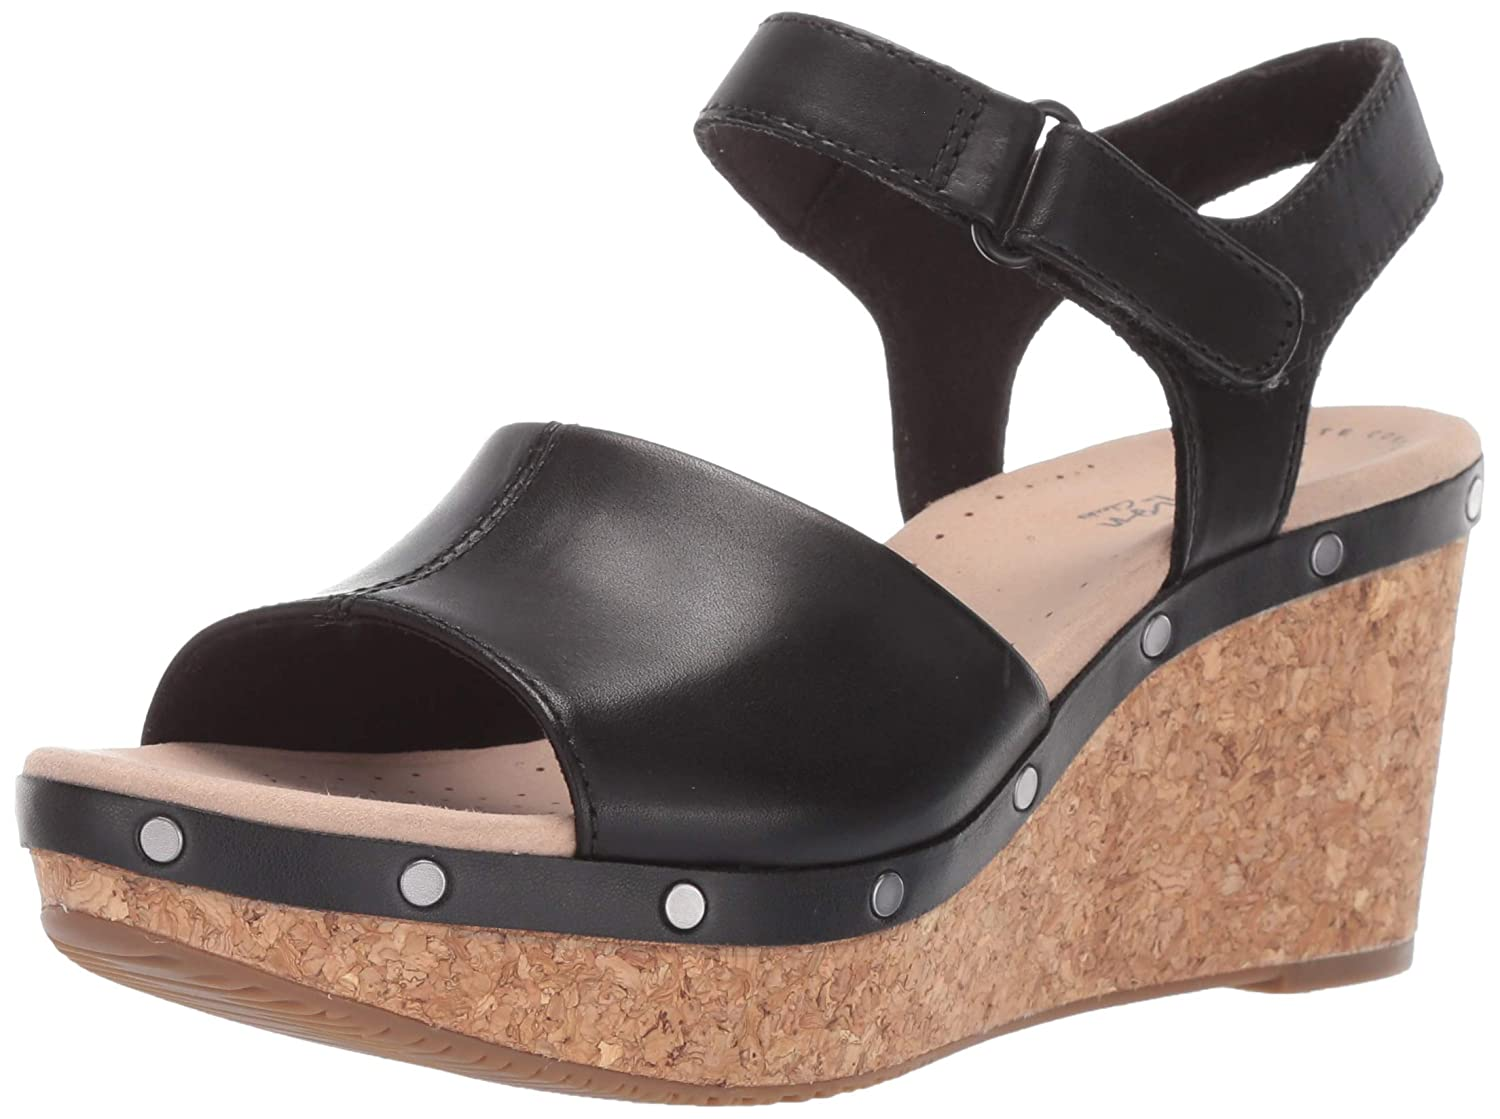 5013c1e58 Amazon.com | CLARKS Women's Annadel Clover Wedge Sandal | Shoes